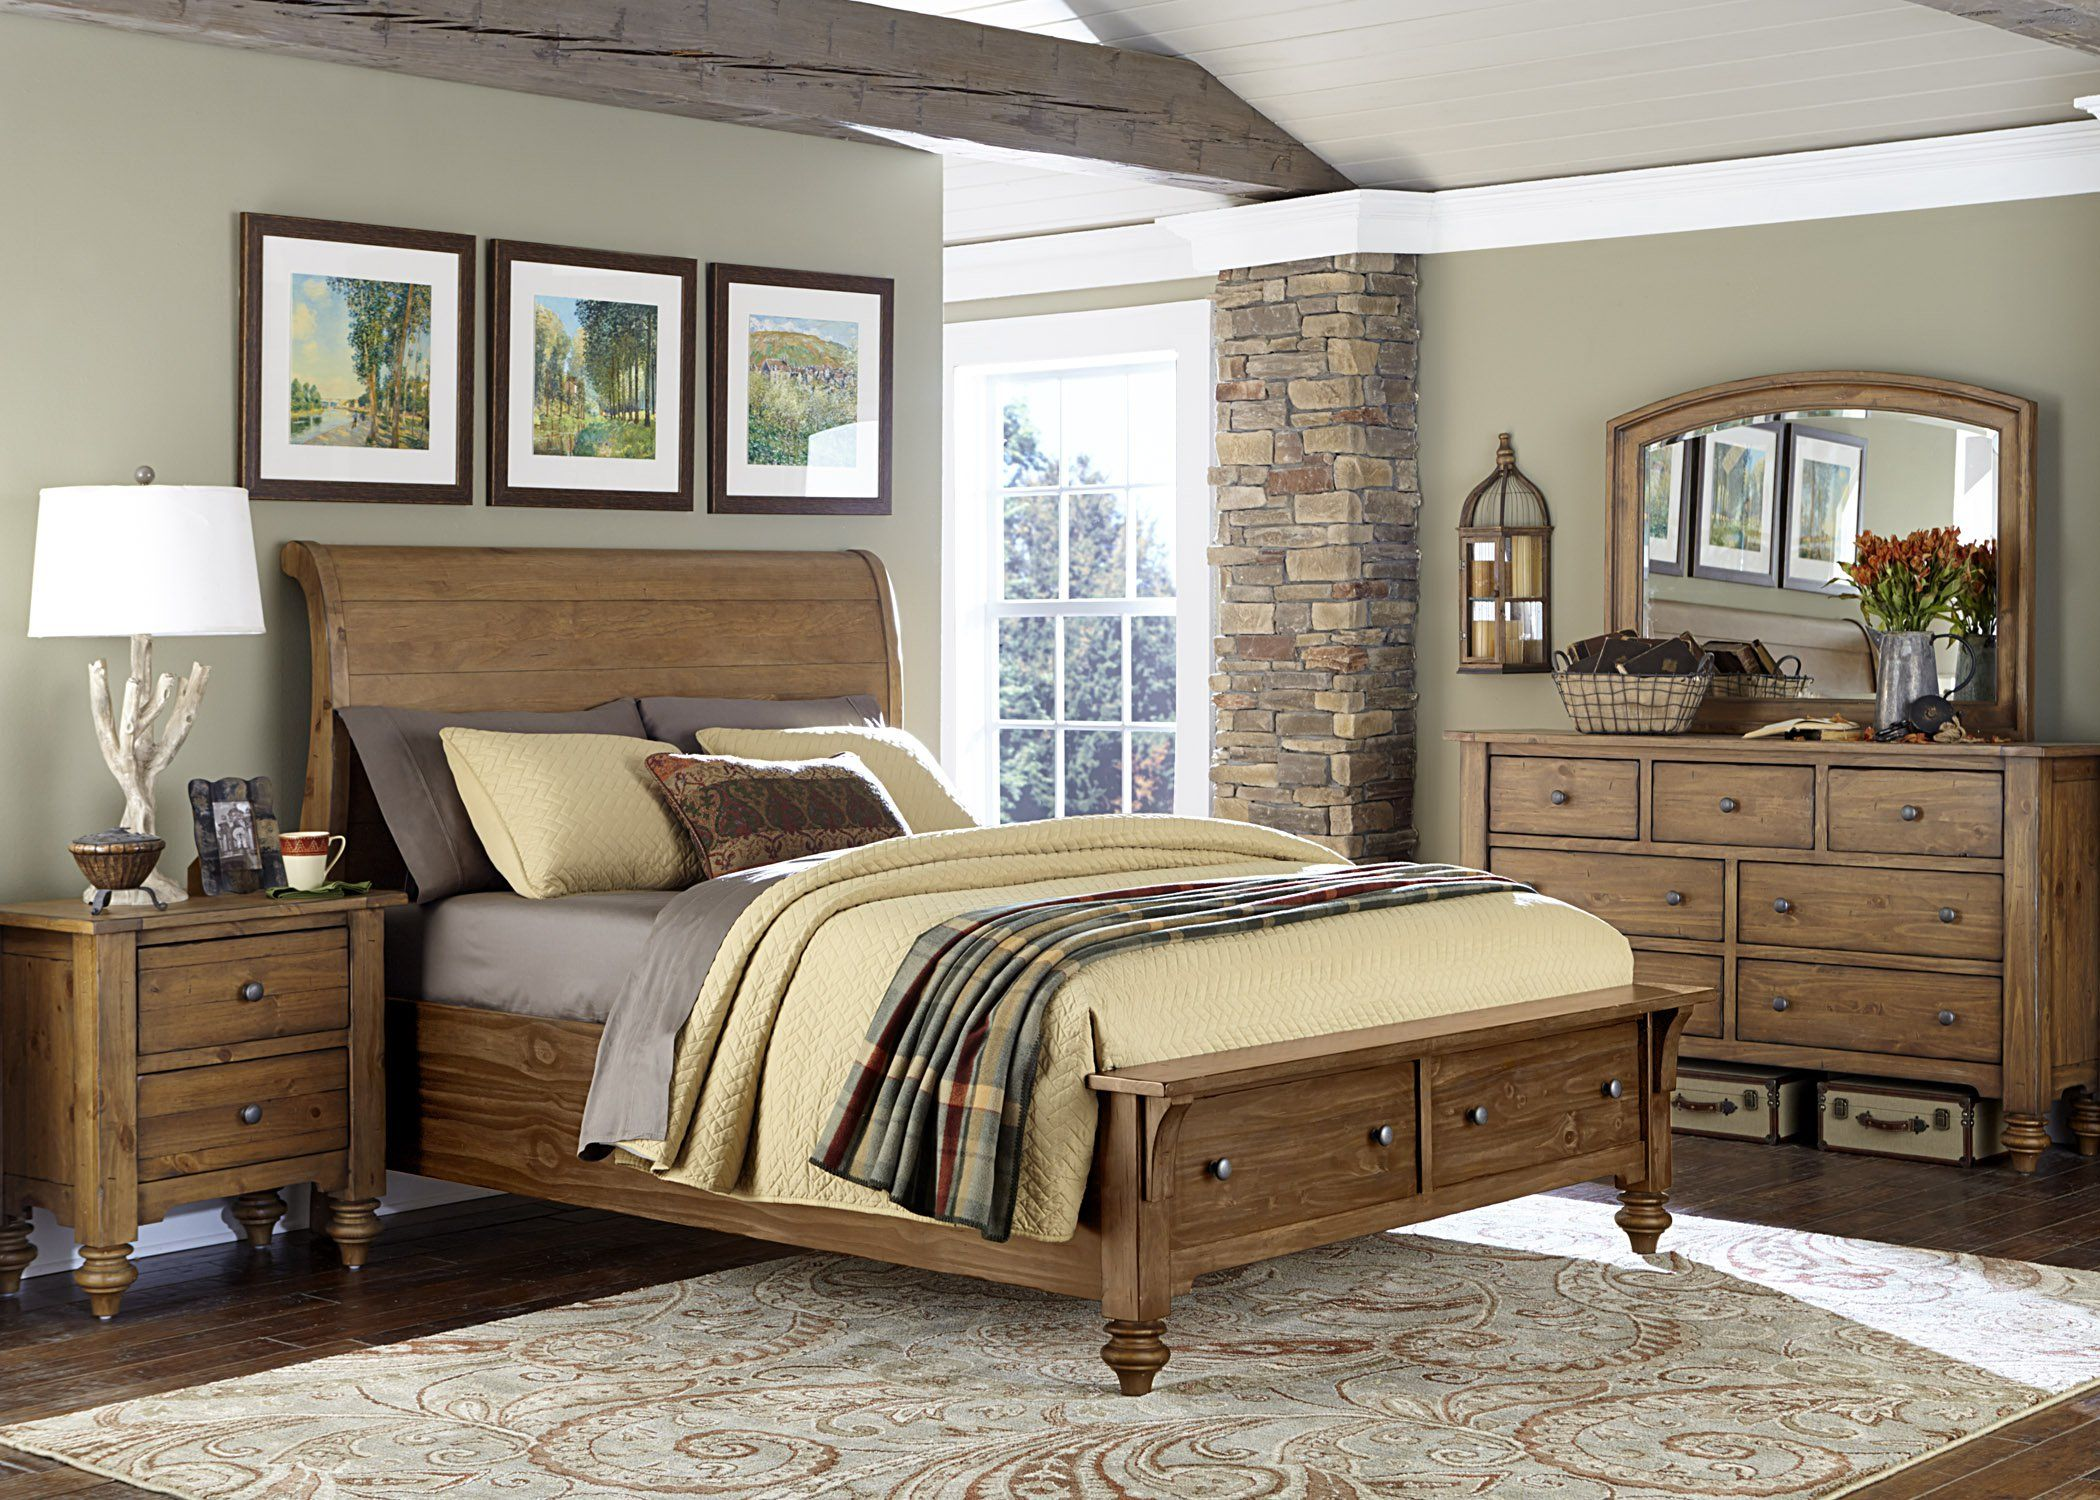 Liberty Furniture Industries Southern Pines II Collection Storage - Liberty furniture industries bedroom sets